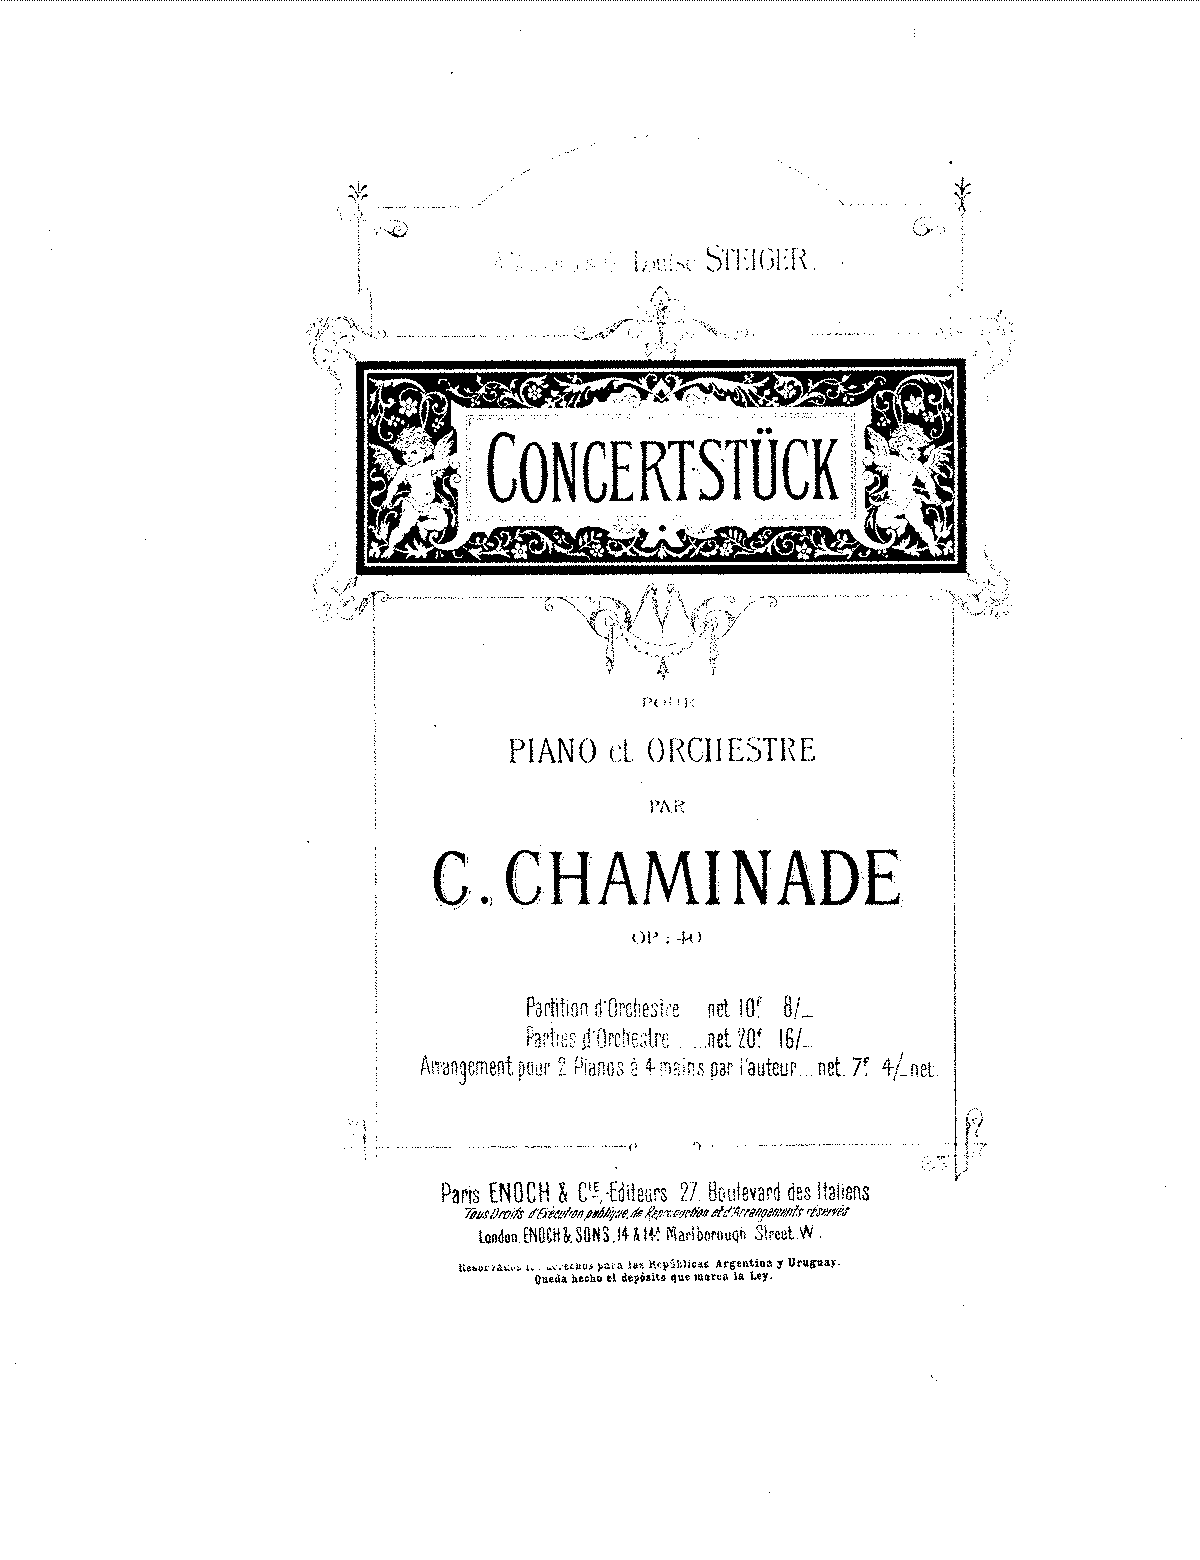 Chaminade - Concertstuck, Op.40 (piano 4 hands arr, first piano).pdf